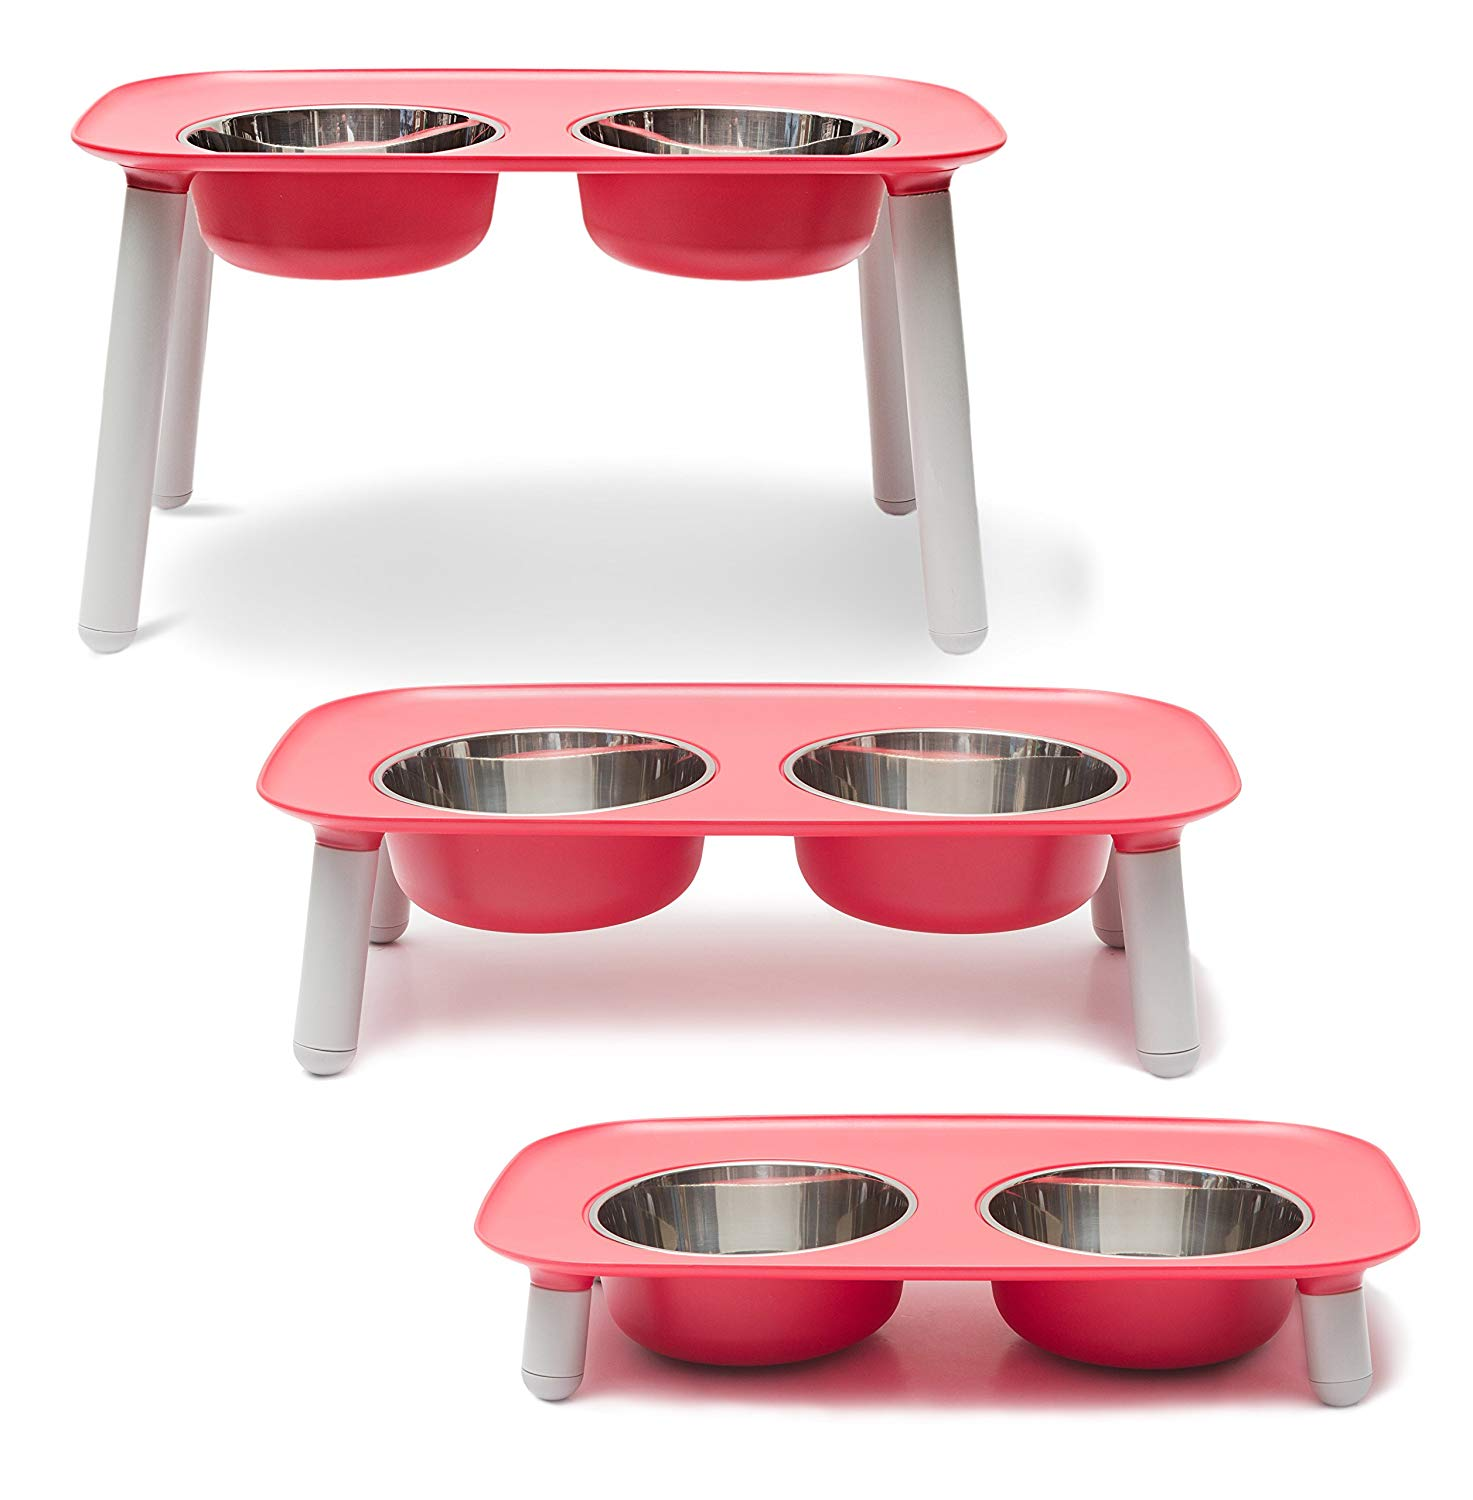 Messy Mutts Elevated Double Feeder Dog Bowl, Red